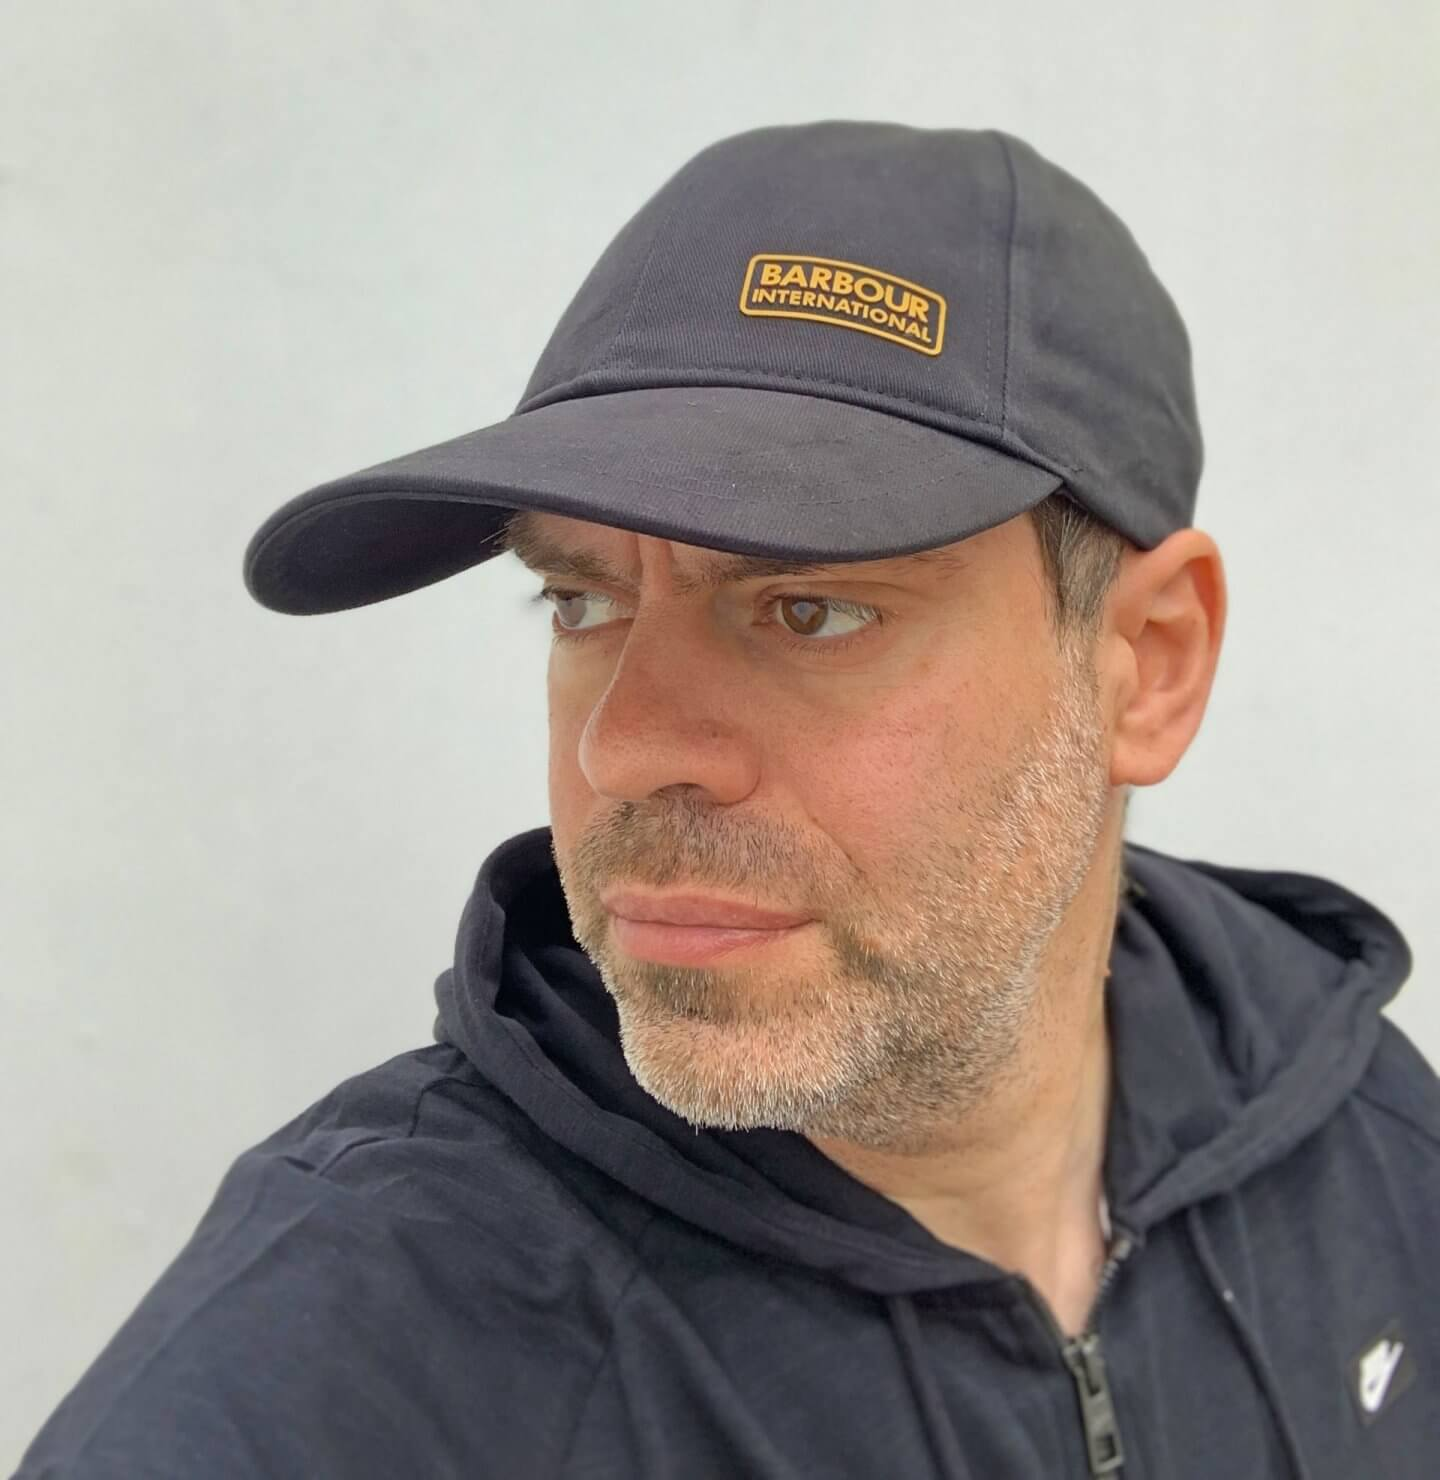 Barbour International cap part of Very menswear range of clothes